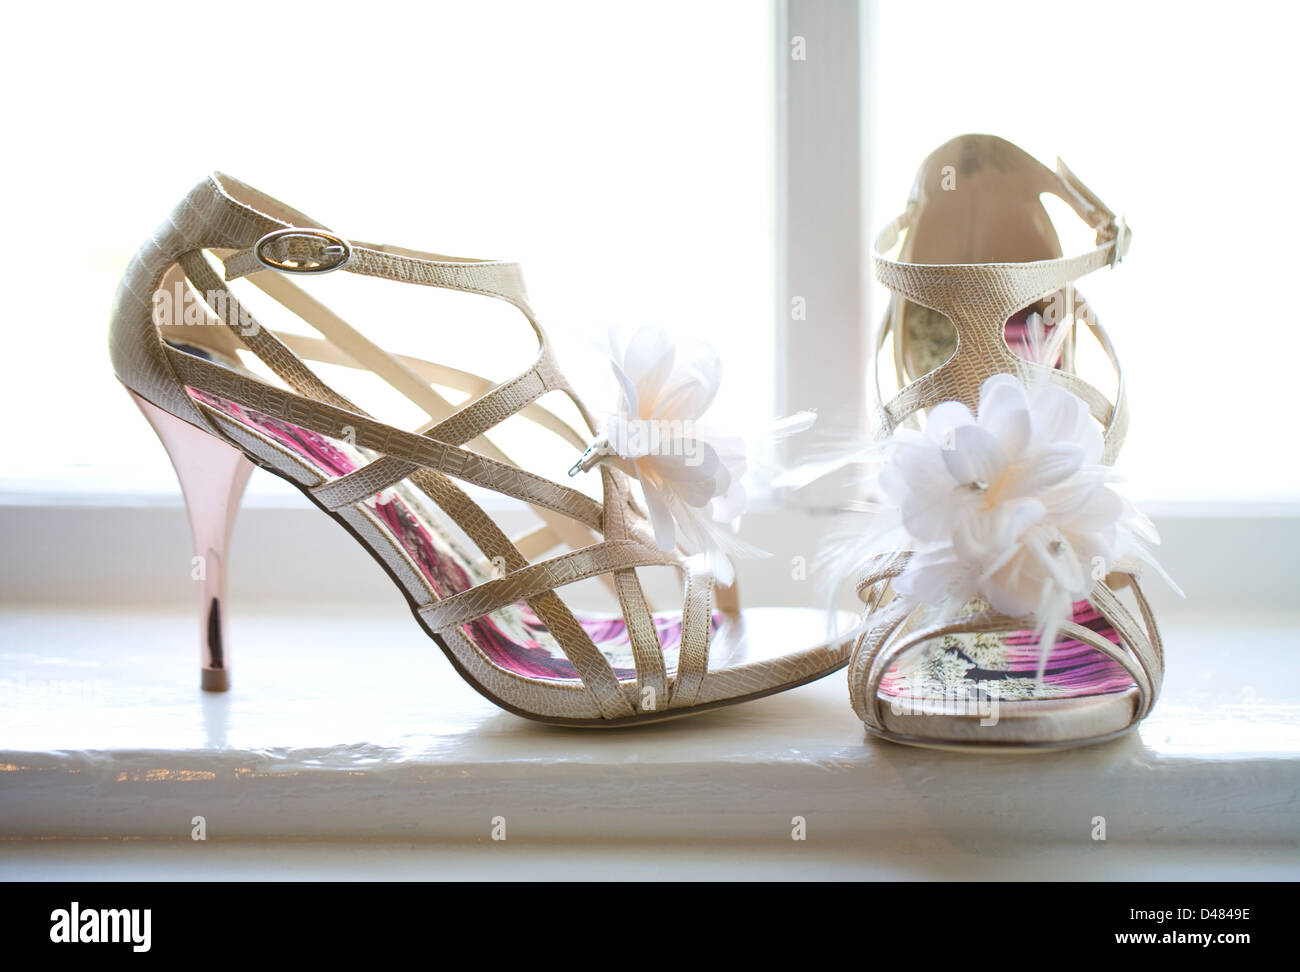 A Brides High Heels Ornate With Flowers And Feathers Sit In A